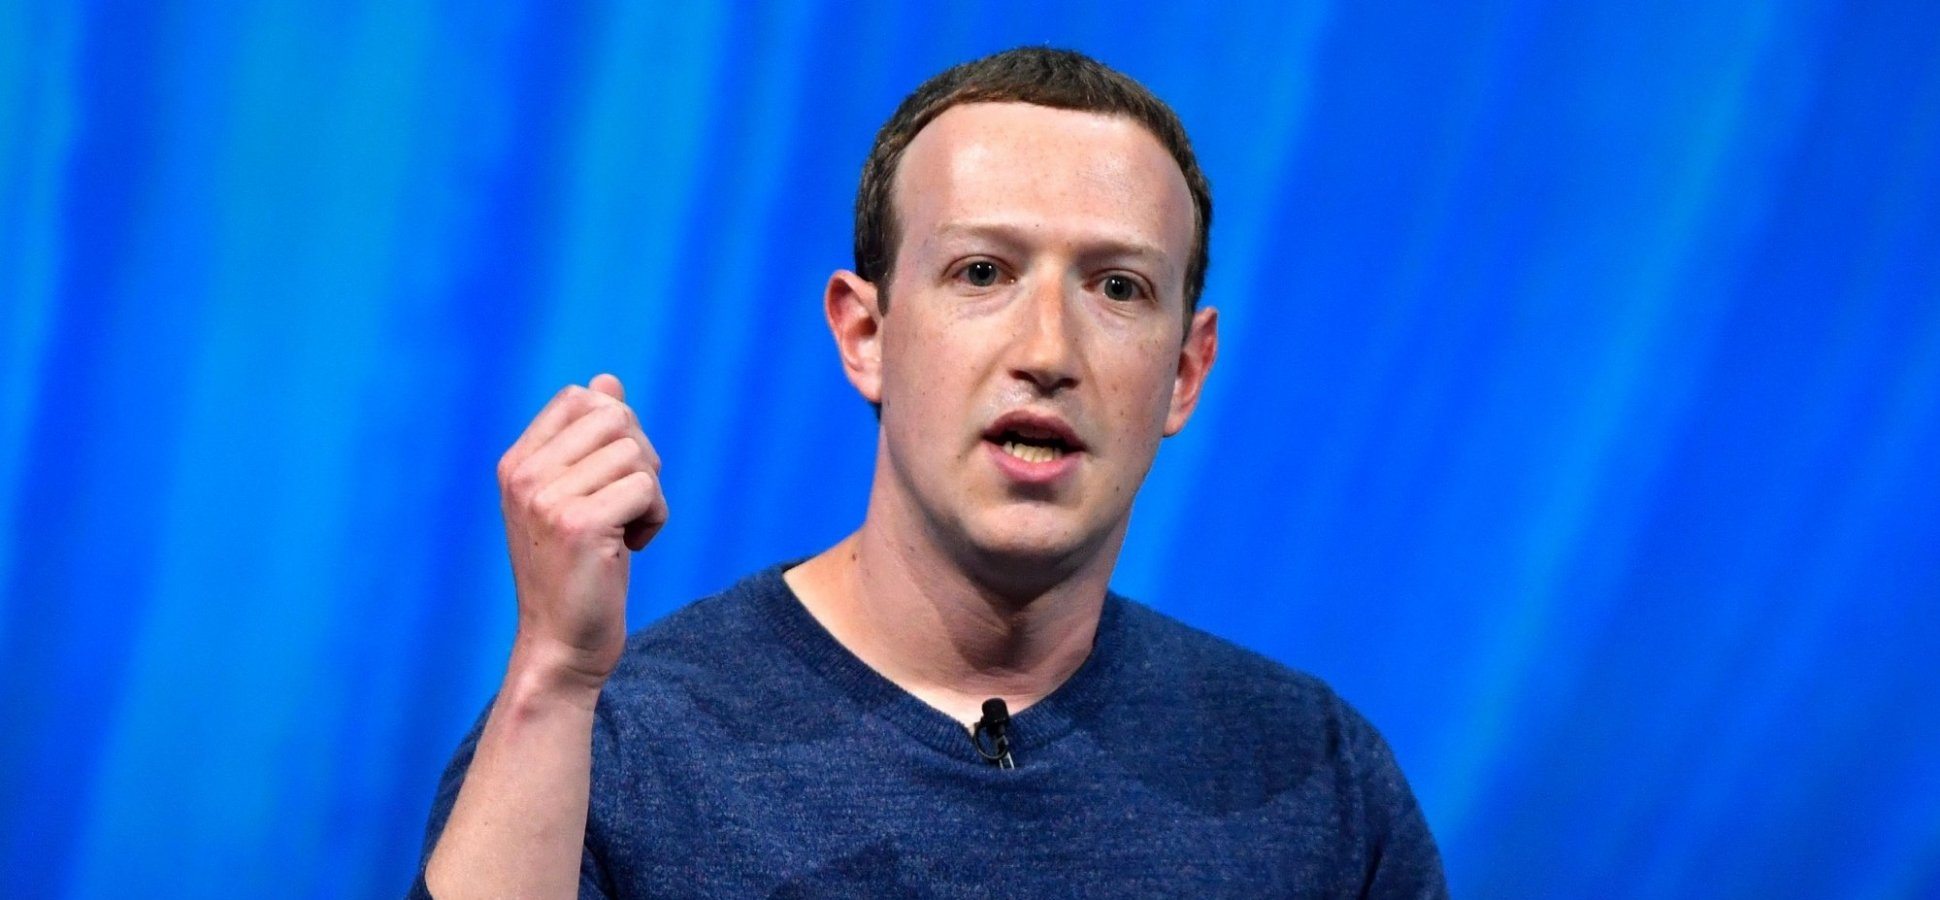 Mark Zuckerberg Says That Facebook Is Committed to Free Expression. He Just Isn't Clear on What That Means